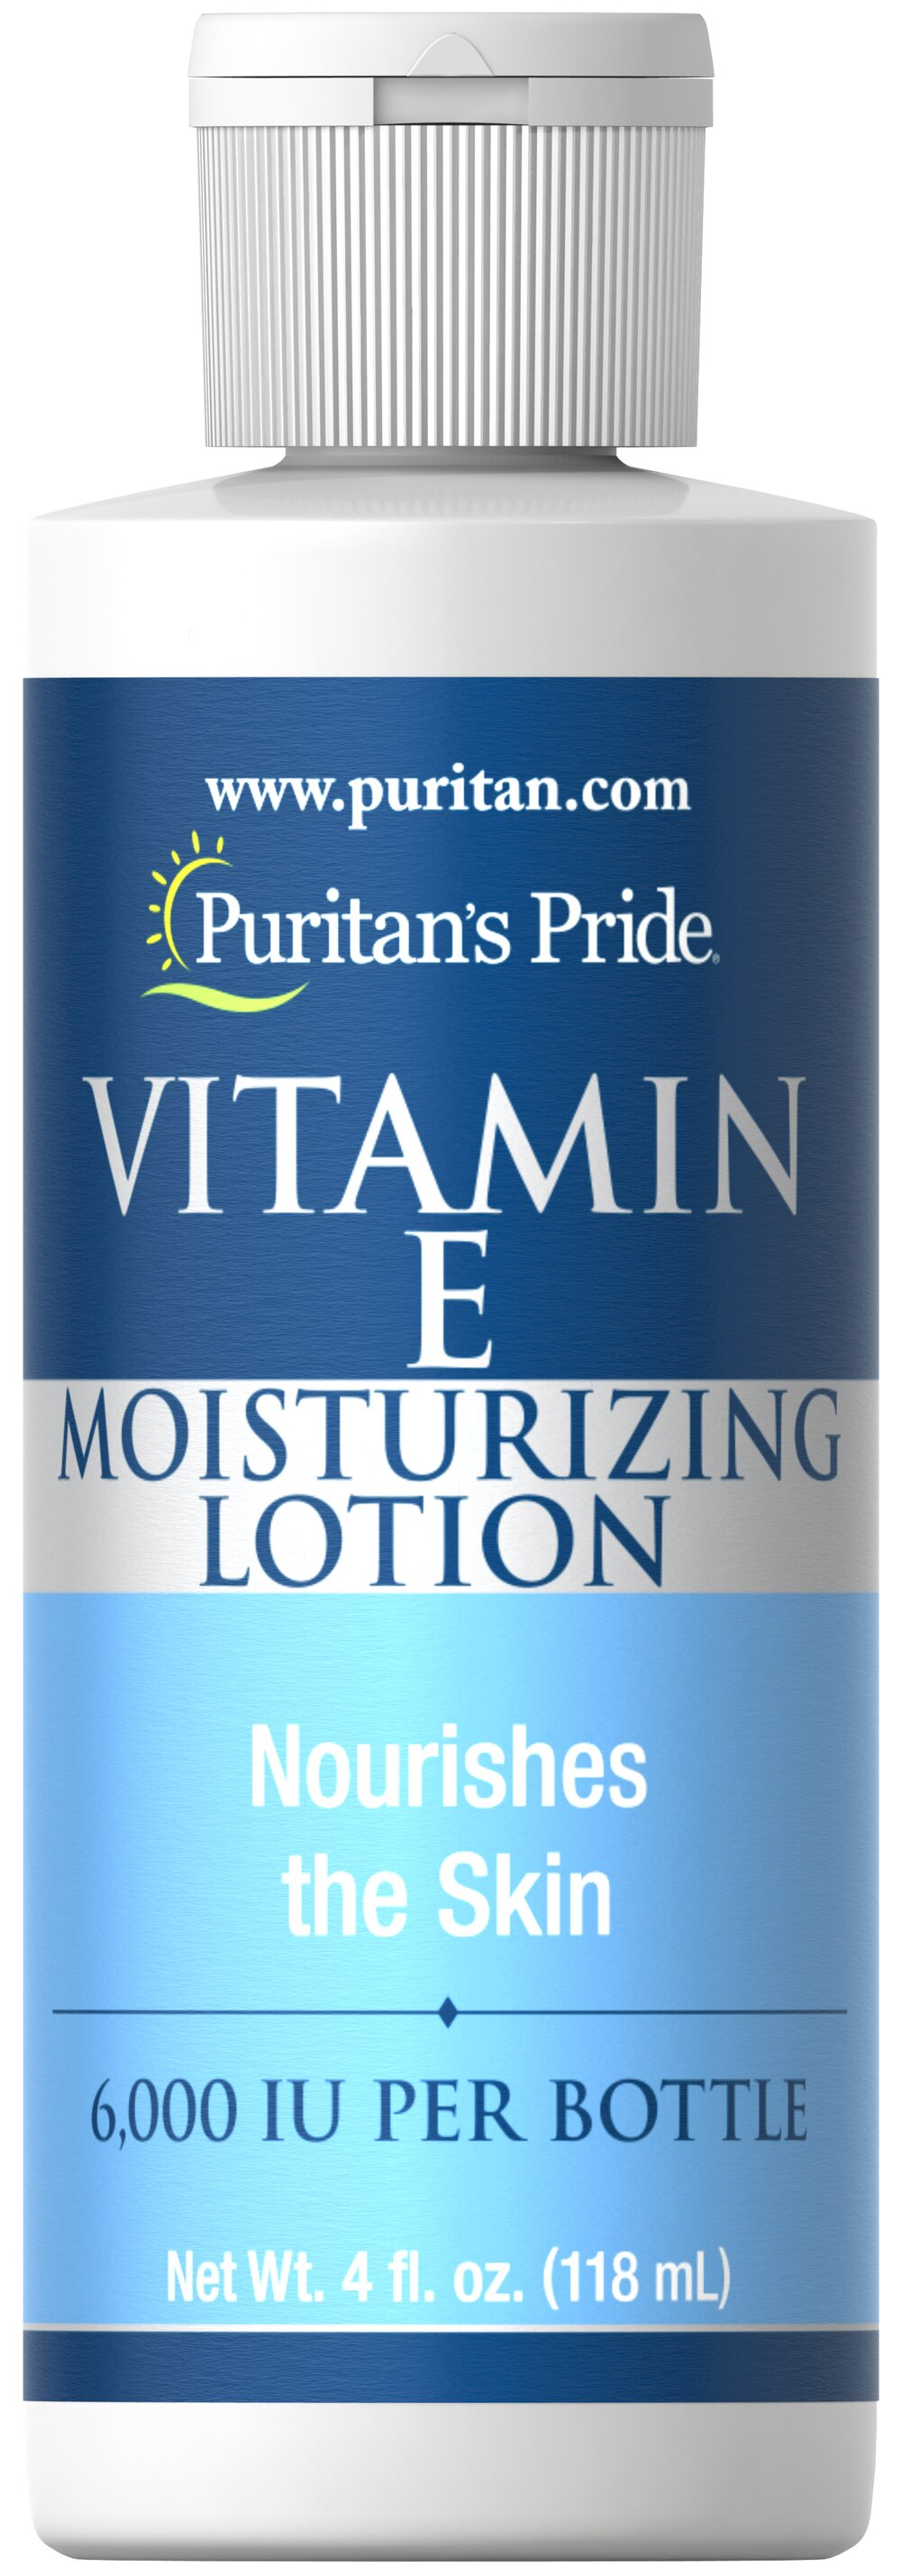 Vitamin E Moisturizing Lotion 6,000 IU <p>The All-Over Body Moisturizer</p>  <p>Now give your skin the natural benefits of Vitamin E Lotion. This rich lotion gives you 6,000 IU of Vitamin E per bottle with the added moisturizing benefits of natural Wheat Germ Oil. The protective emollient action maintains the natural moisture balance of the skin leaving even the driest skin smooth all over.</p> 4 oz Lotion 6000 IU $6.99